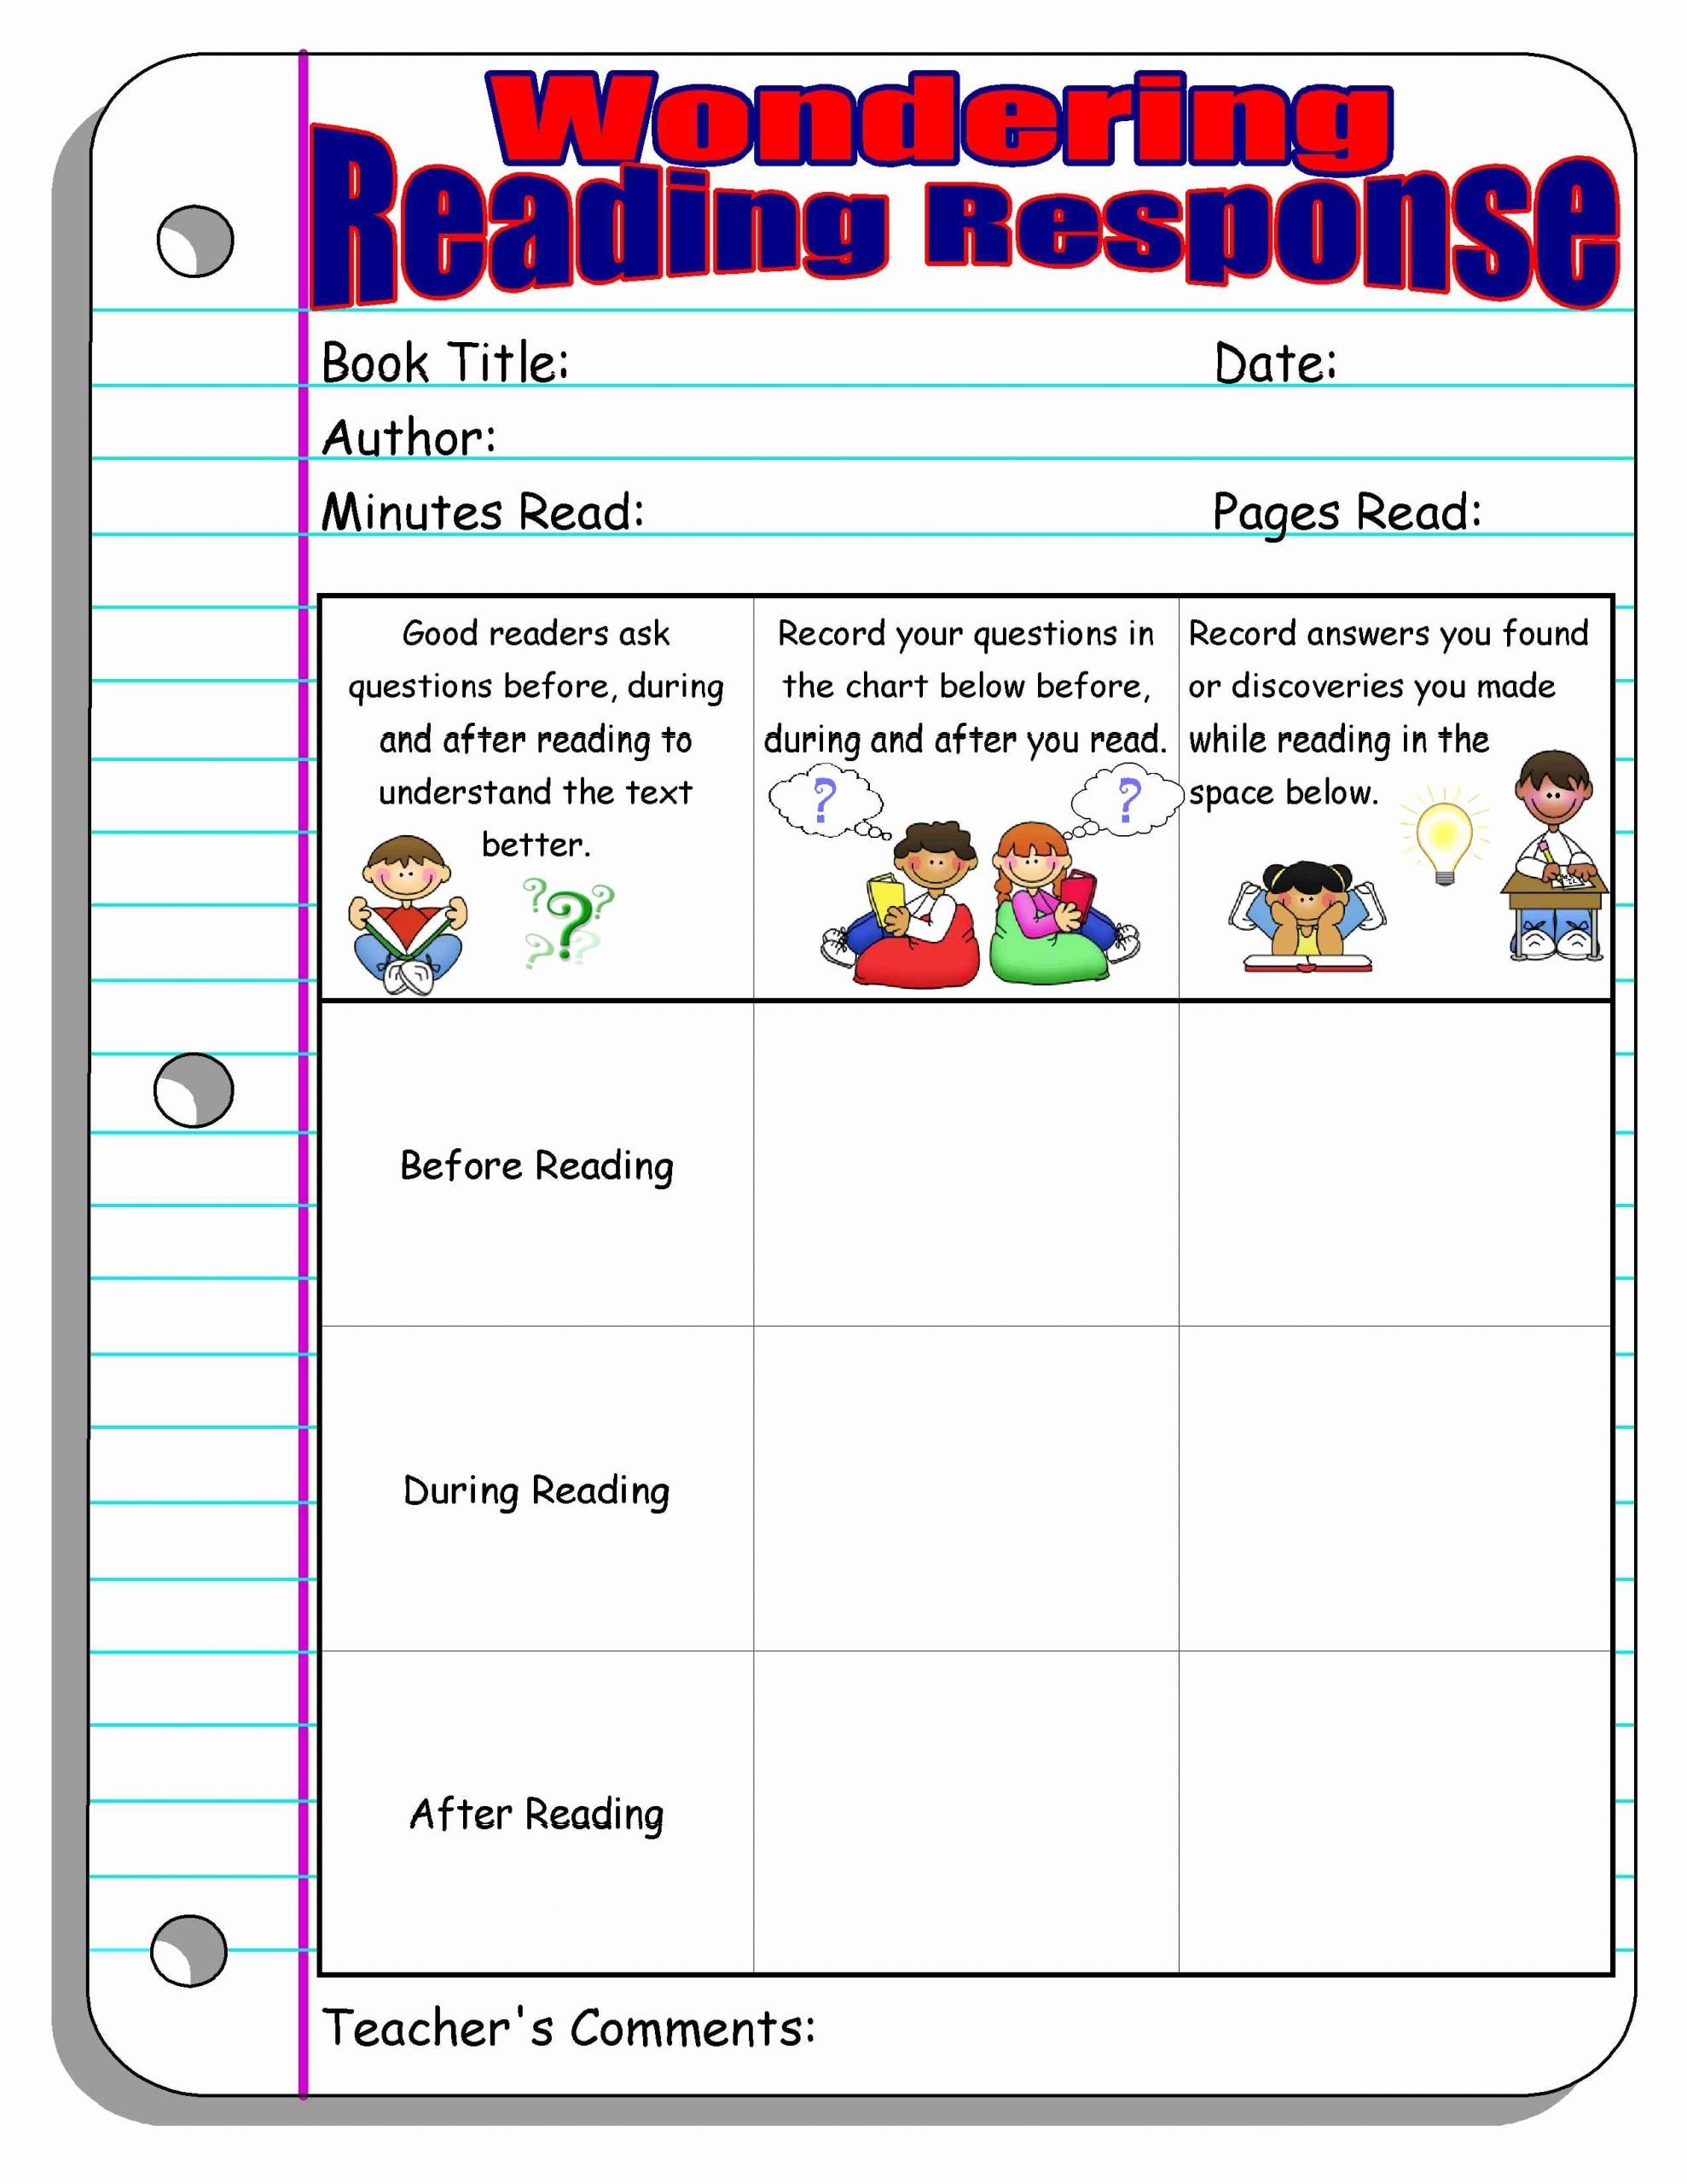 Reading Response Worksheets Middle School Best Of Reading Response forms and Graphic organizers